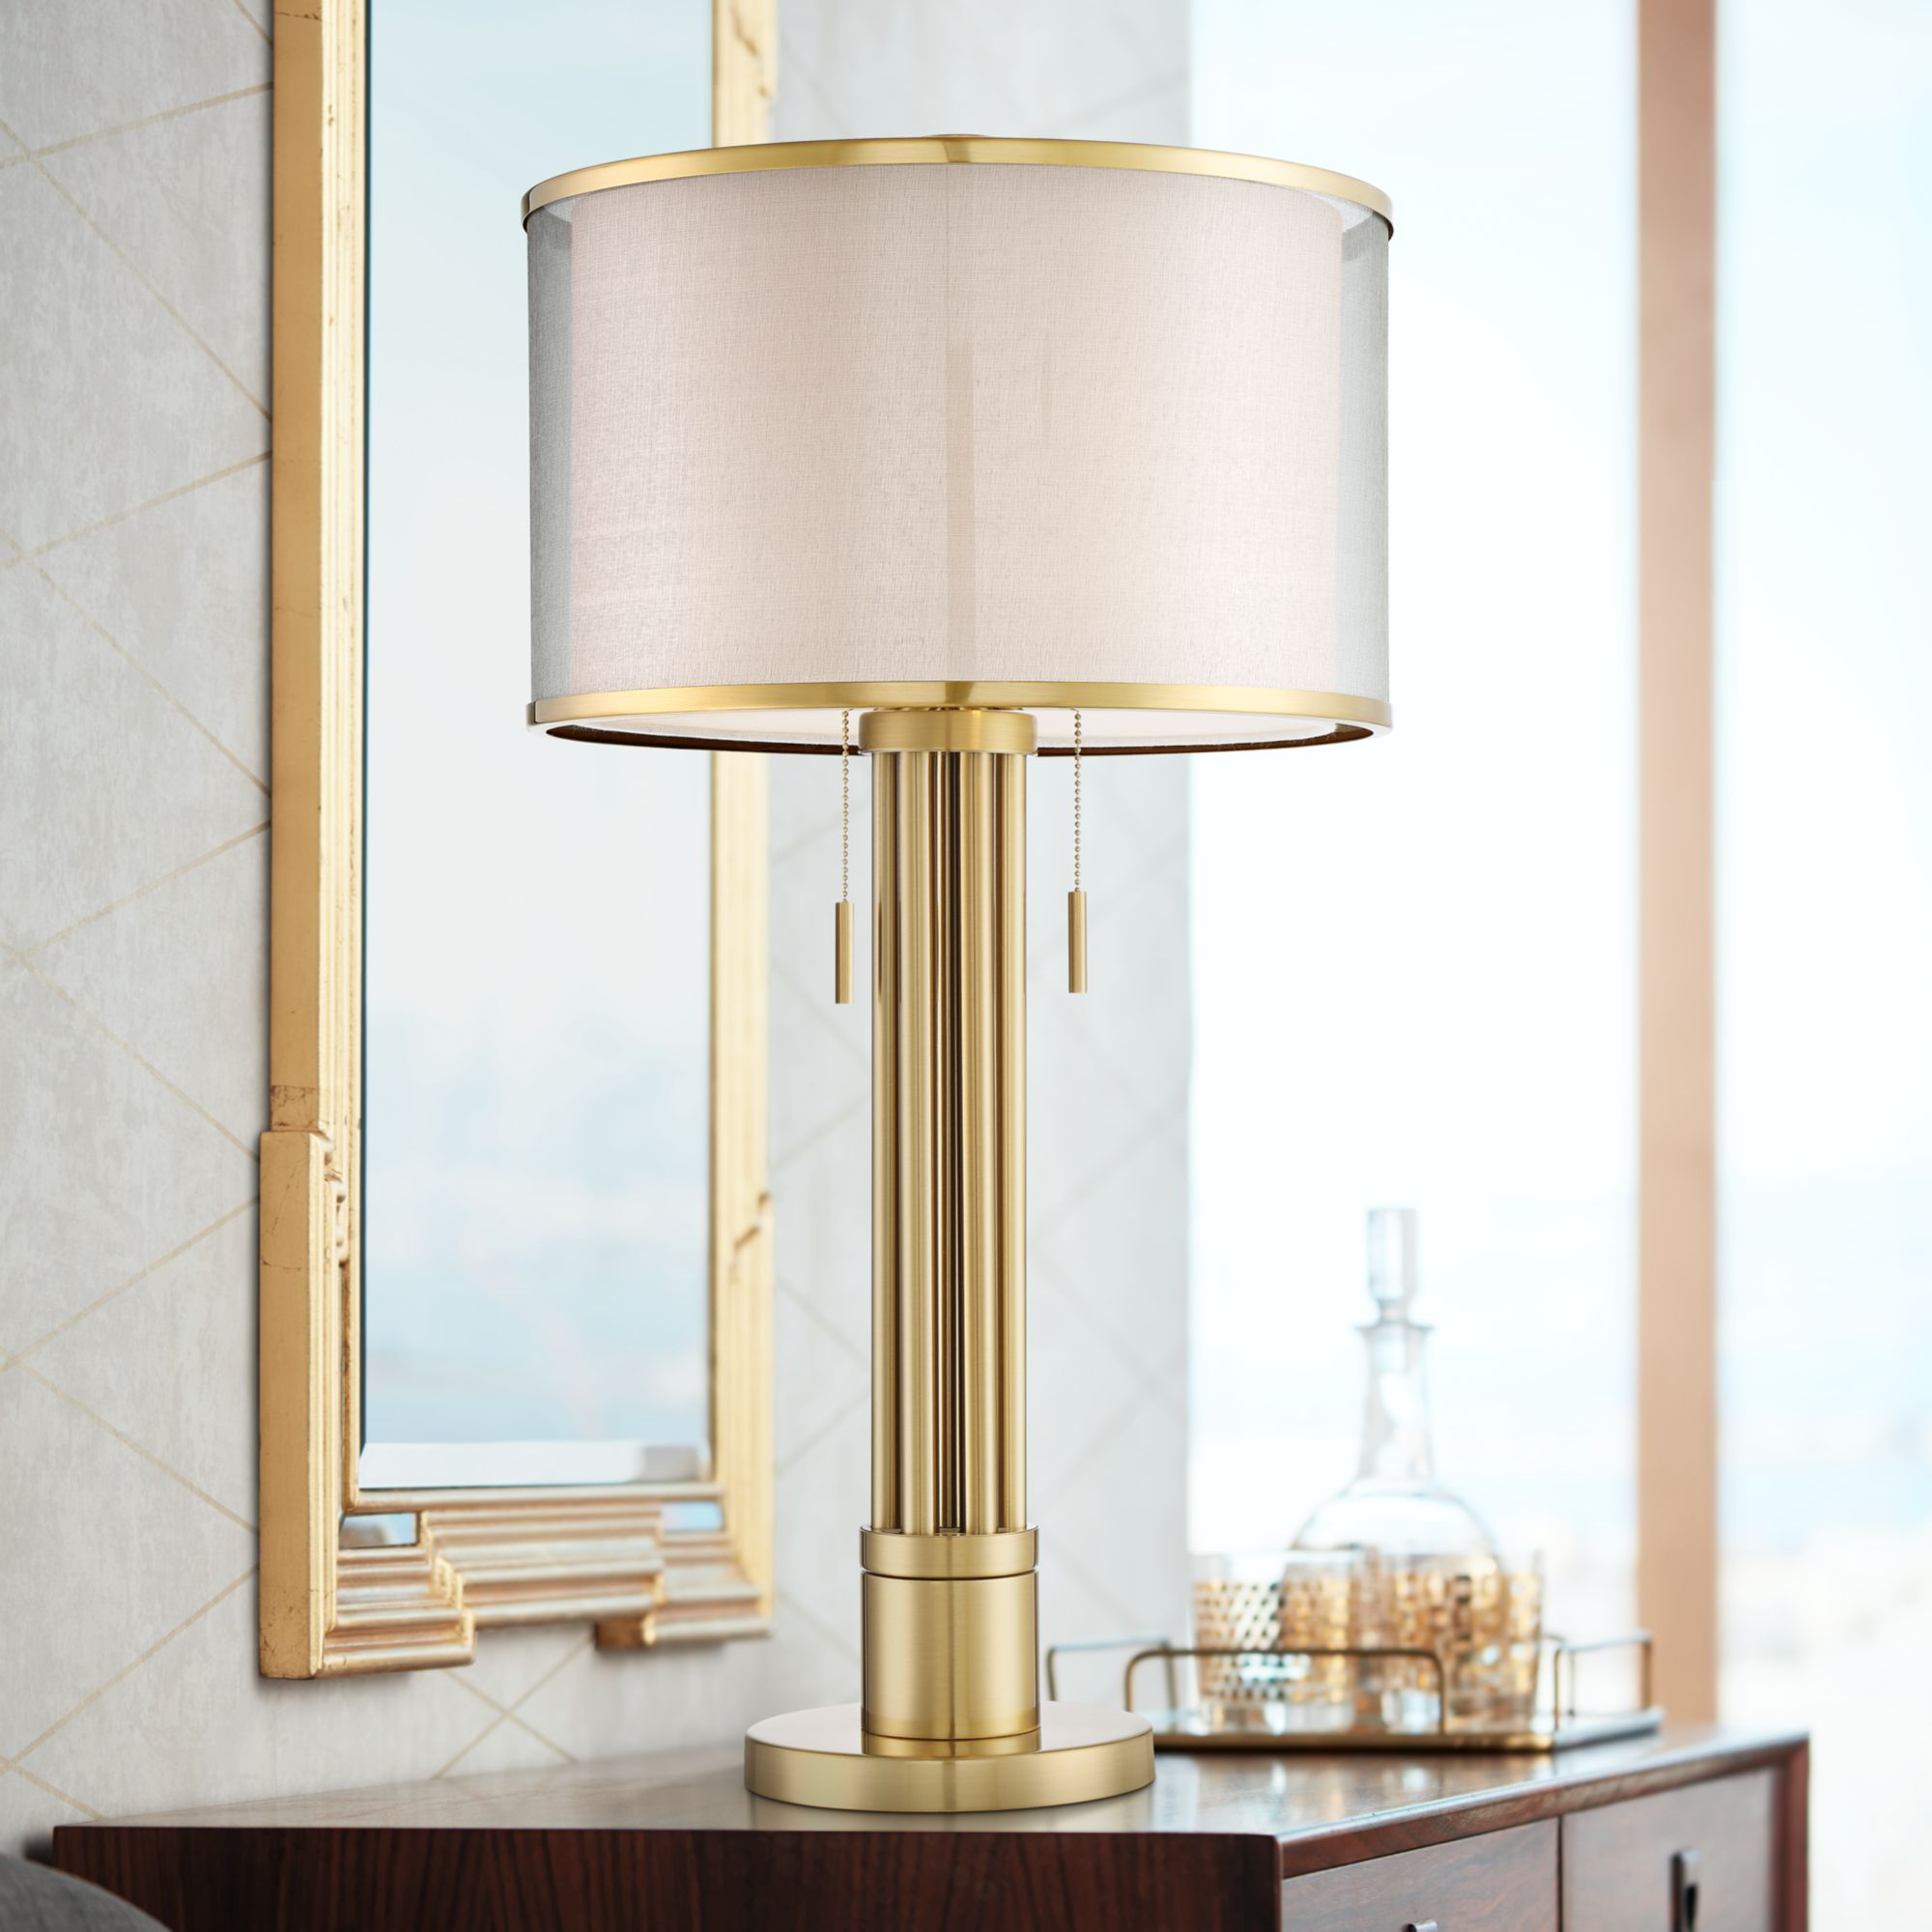 Possini Euro Design Modern Table Lamp Brass Column Taupe Organza Linen Double Drum Shade for Living Room Family Bedroom Bedside